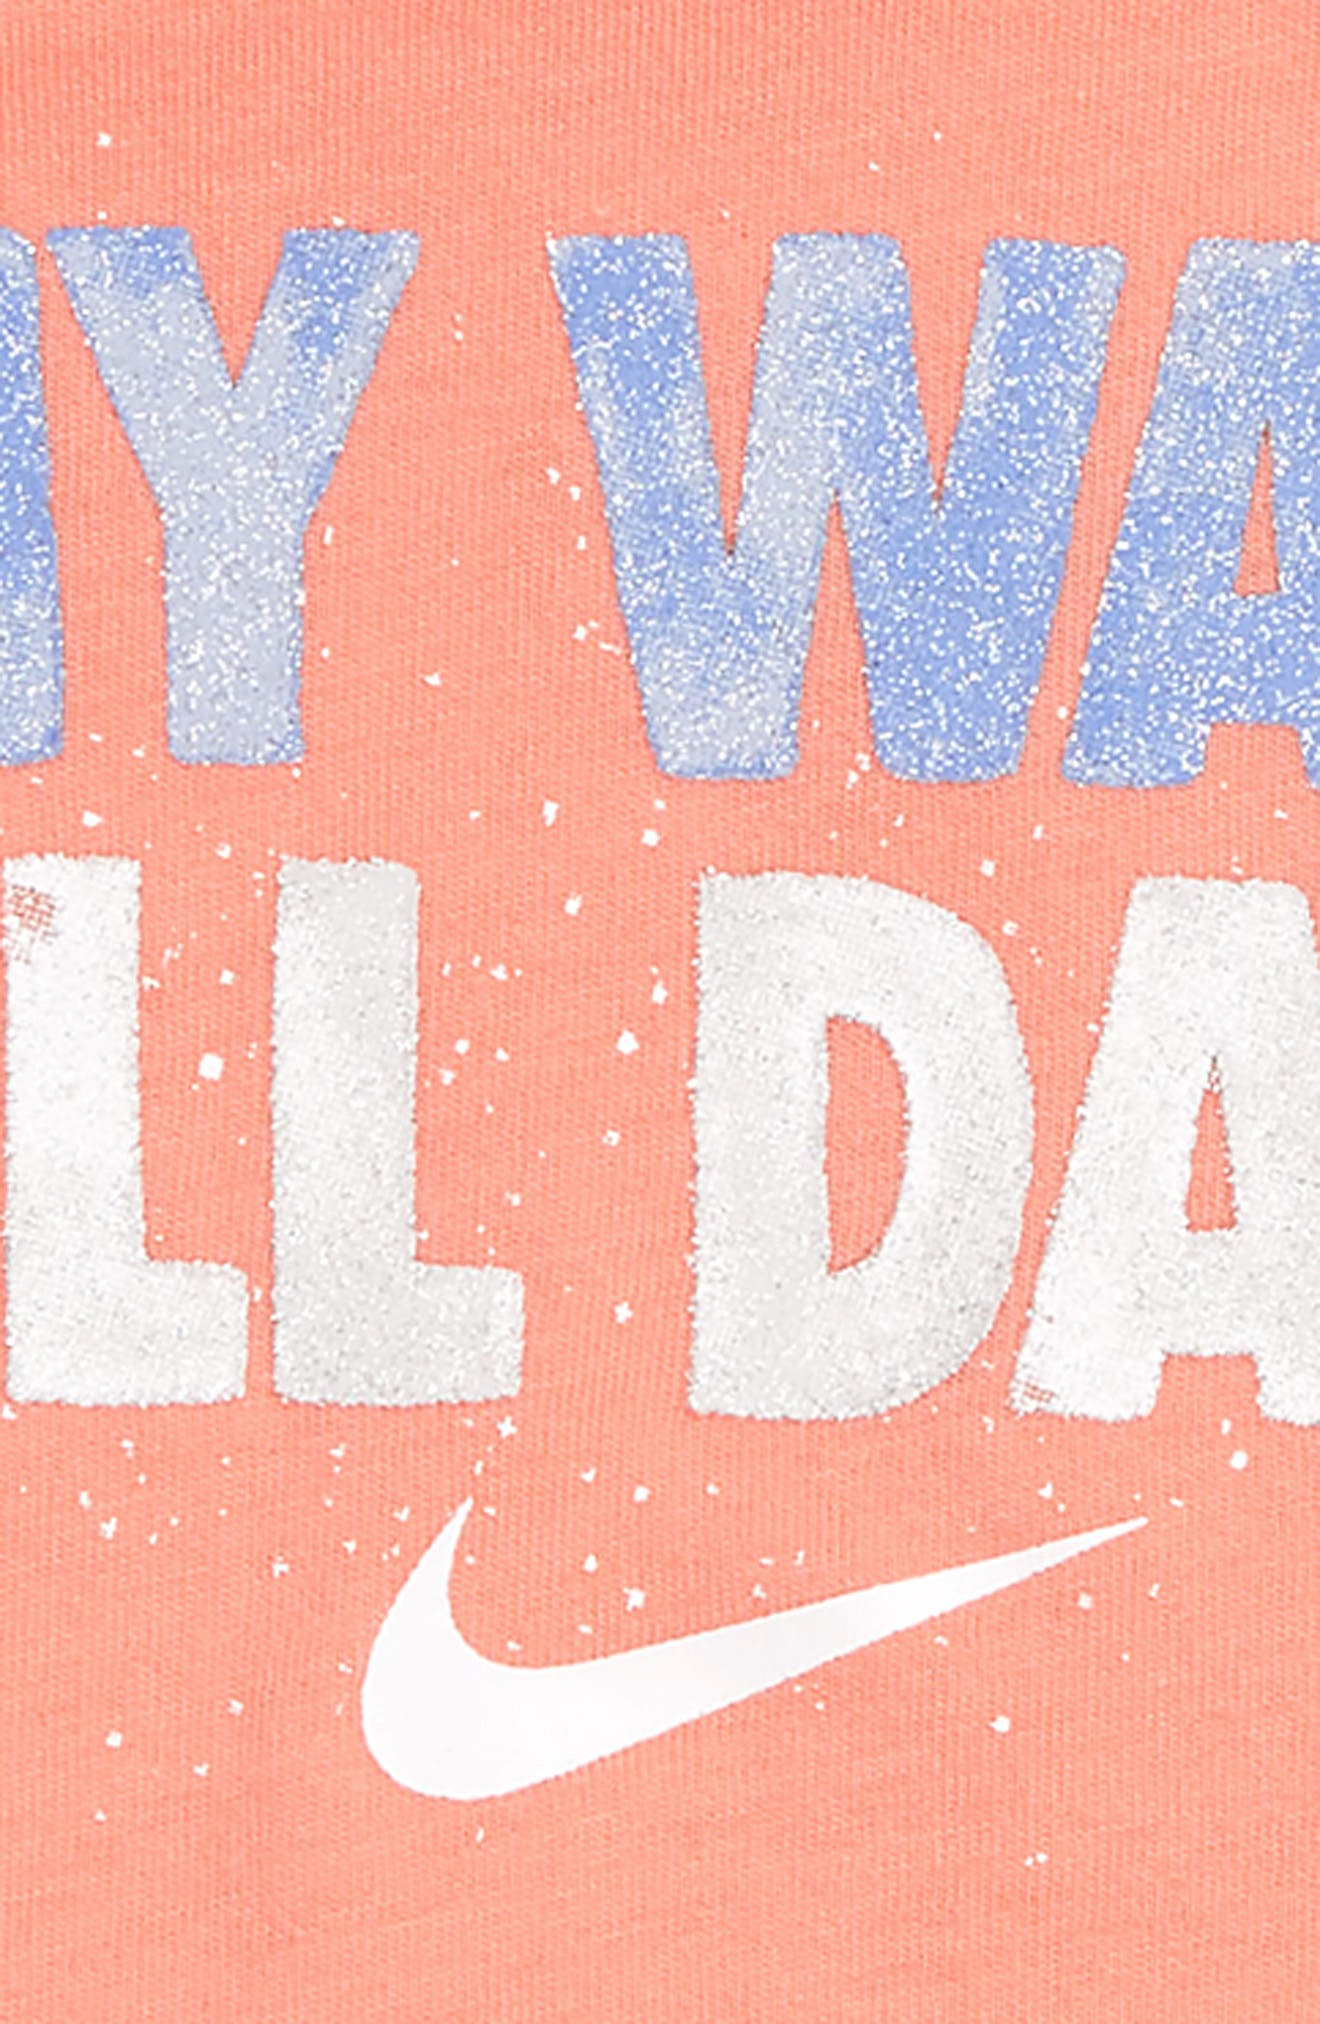 My Way All Day Graphic Tee & Shorts Set,                             Alternate thumbnail 2, color,                             Royal Pulse